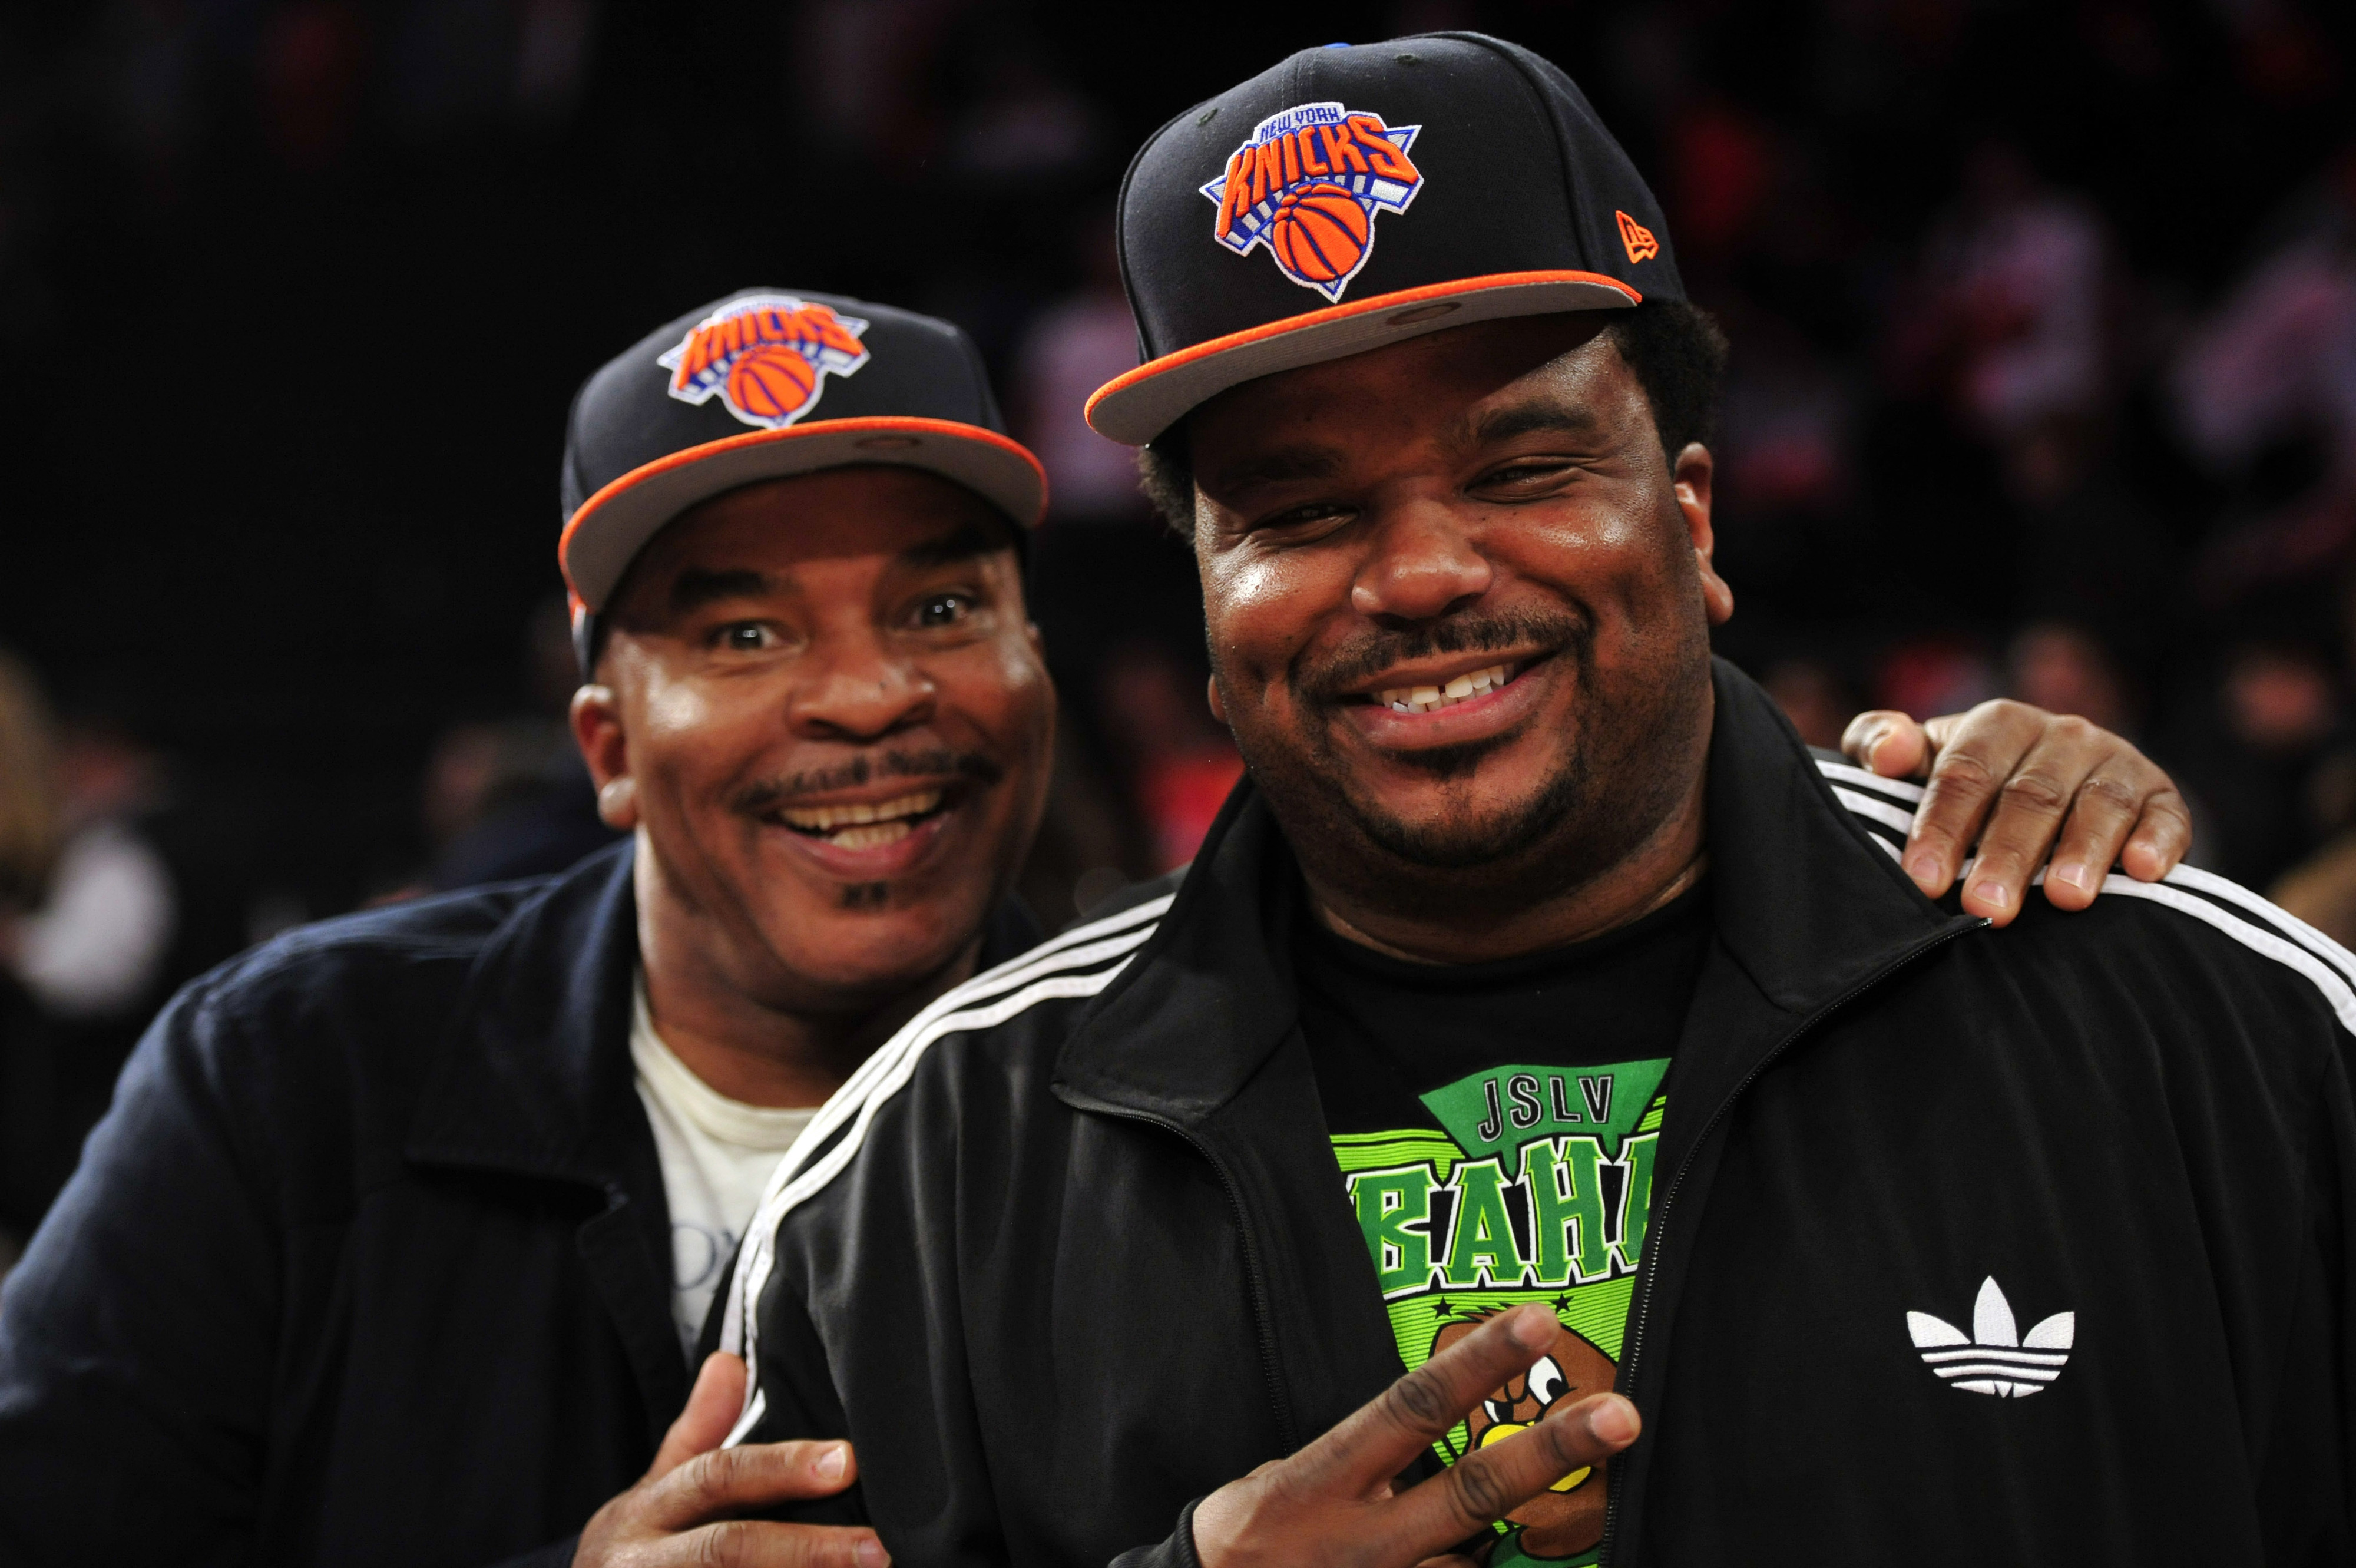 Ironic: last time the Knicks were good was also the last time David Alan Grier was relevant